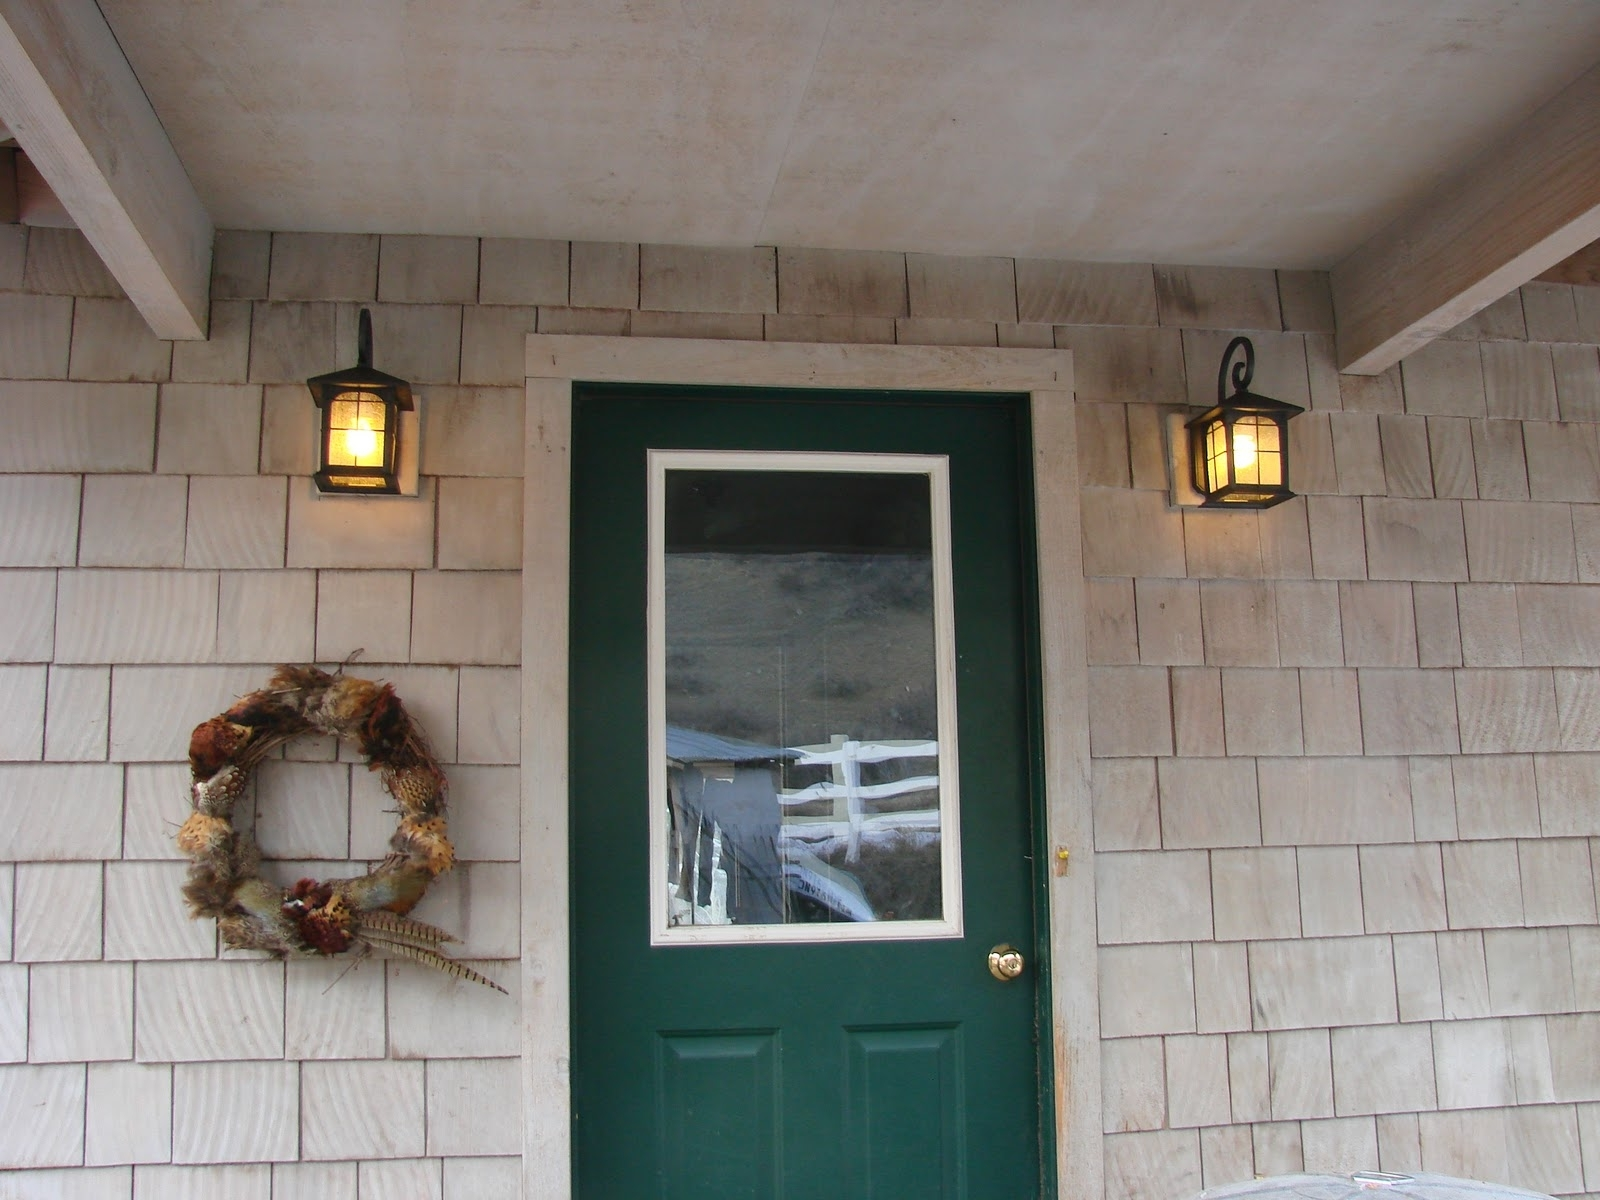 Outdoor Lanterns For Front Porch Throughout Most Recently Released Outdoor Porch Lights With Style And Good Taste — Front Porch Light (Gallery 15 of 20)